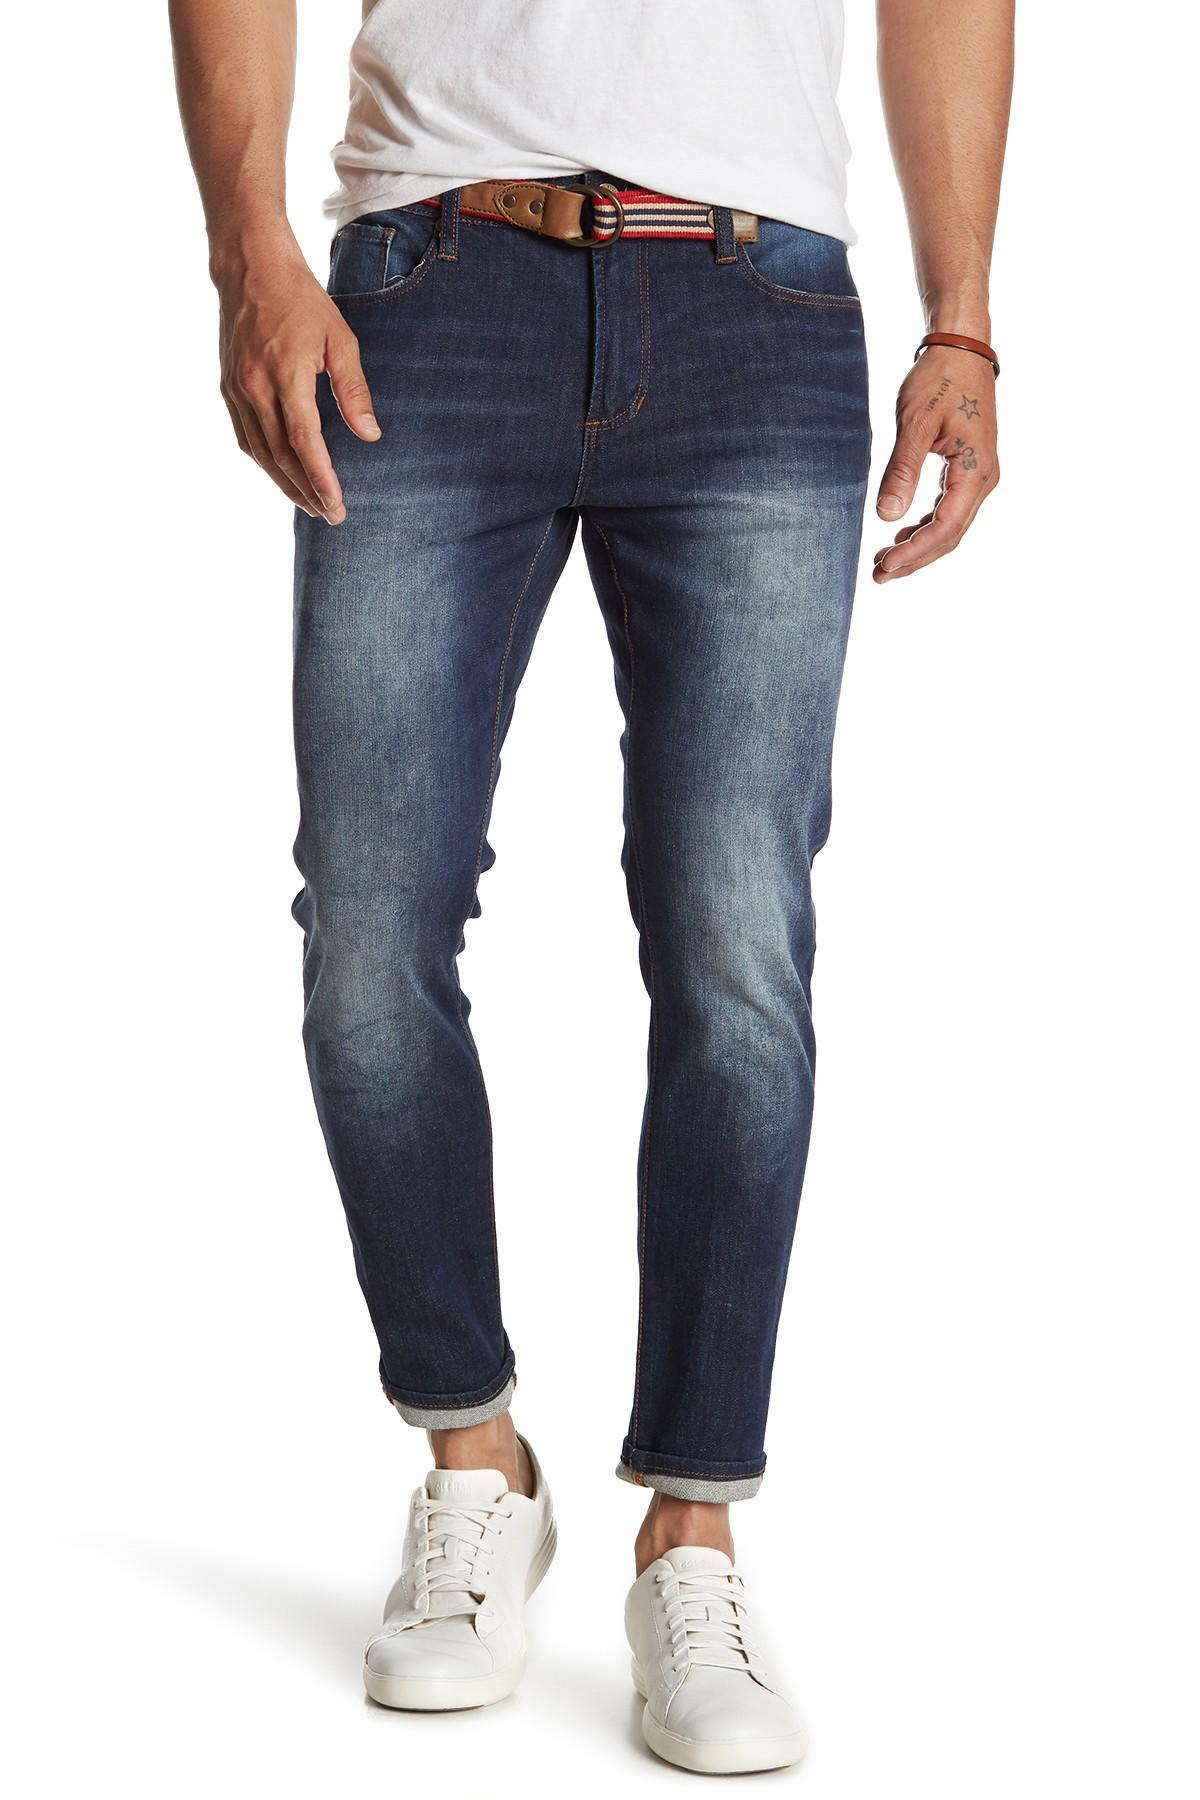 93f8ac5379 Lyst - Articles of Society Dylan Denim Slim Jeans in Blue for Men